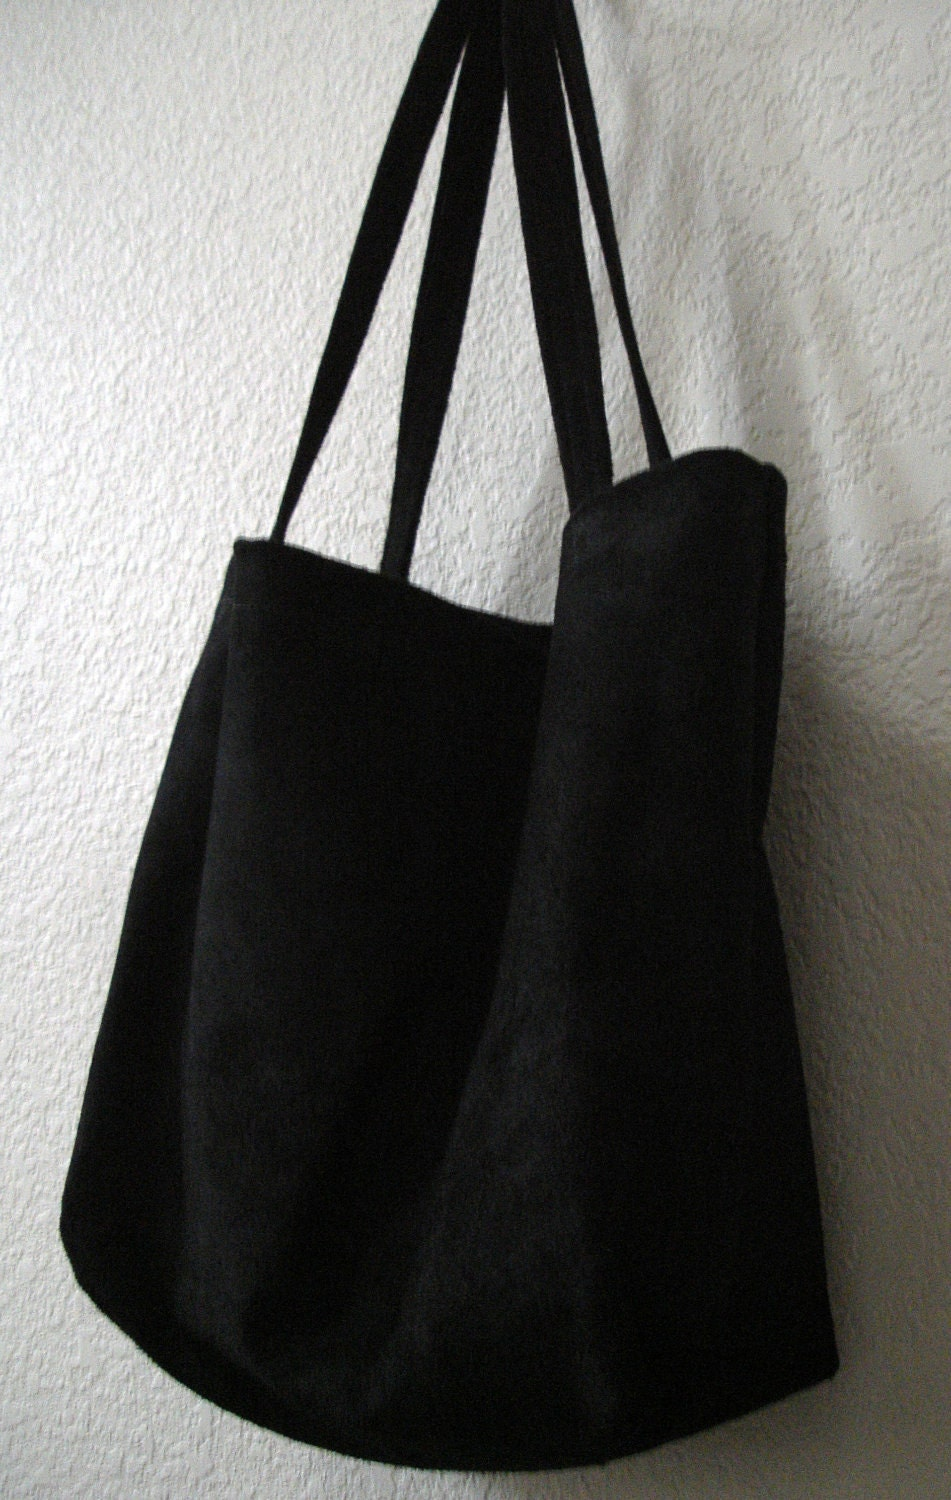 Large and sturdy Black Suede Leather Tote Bag